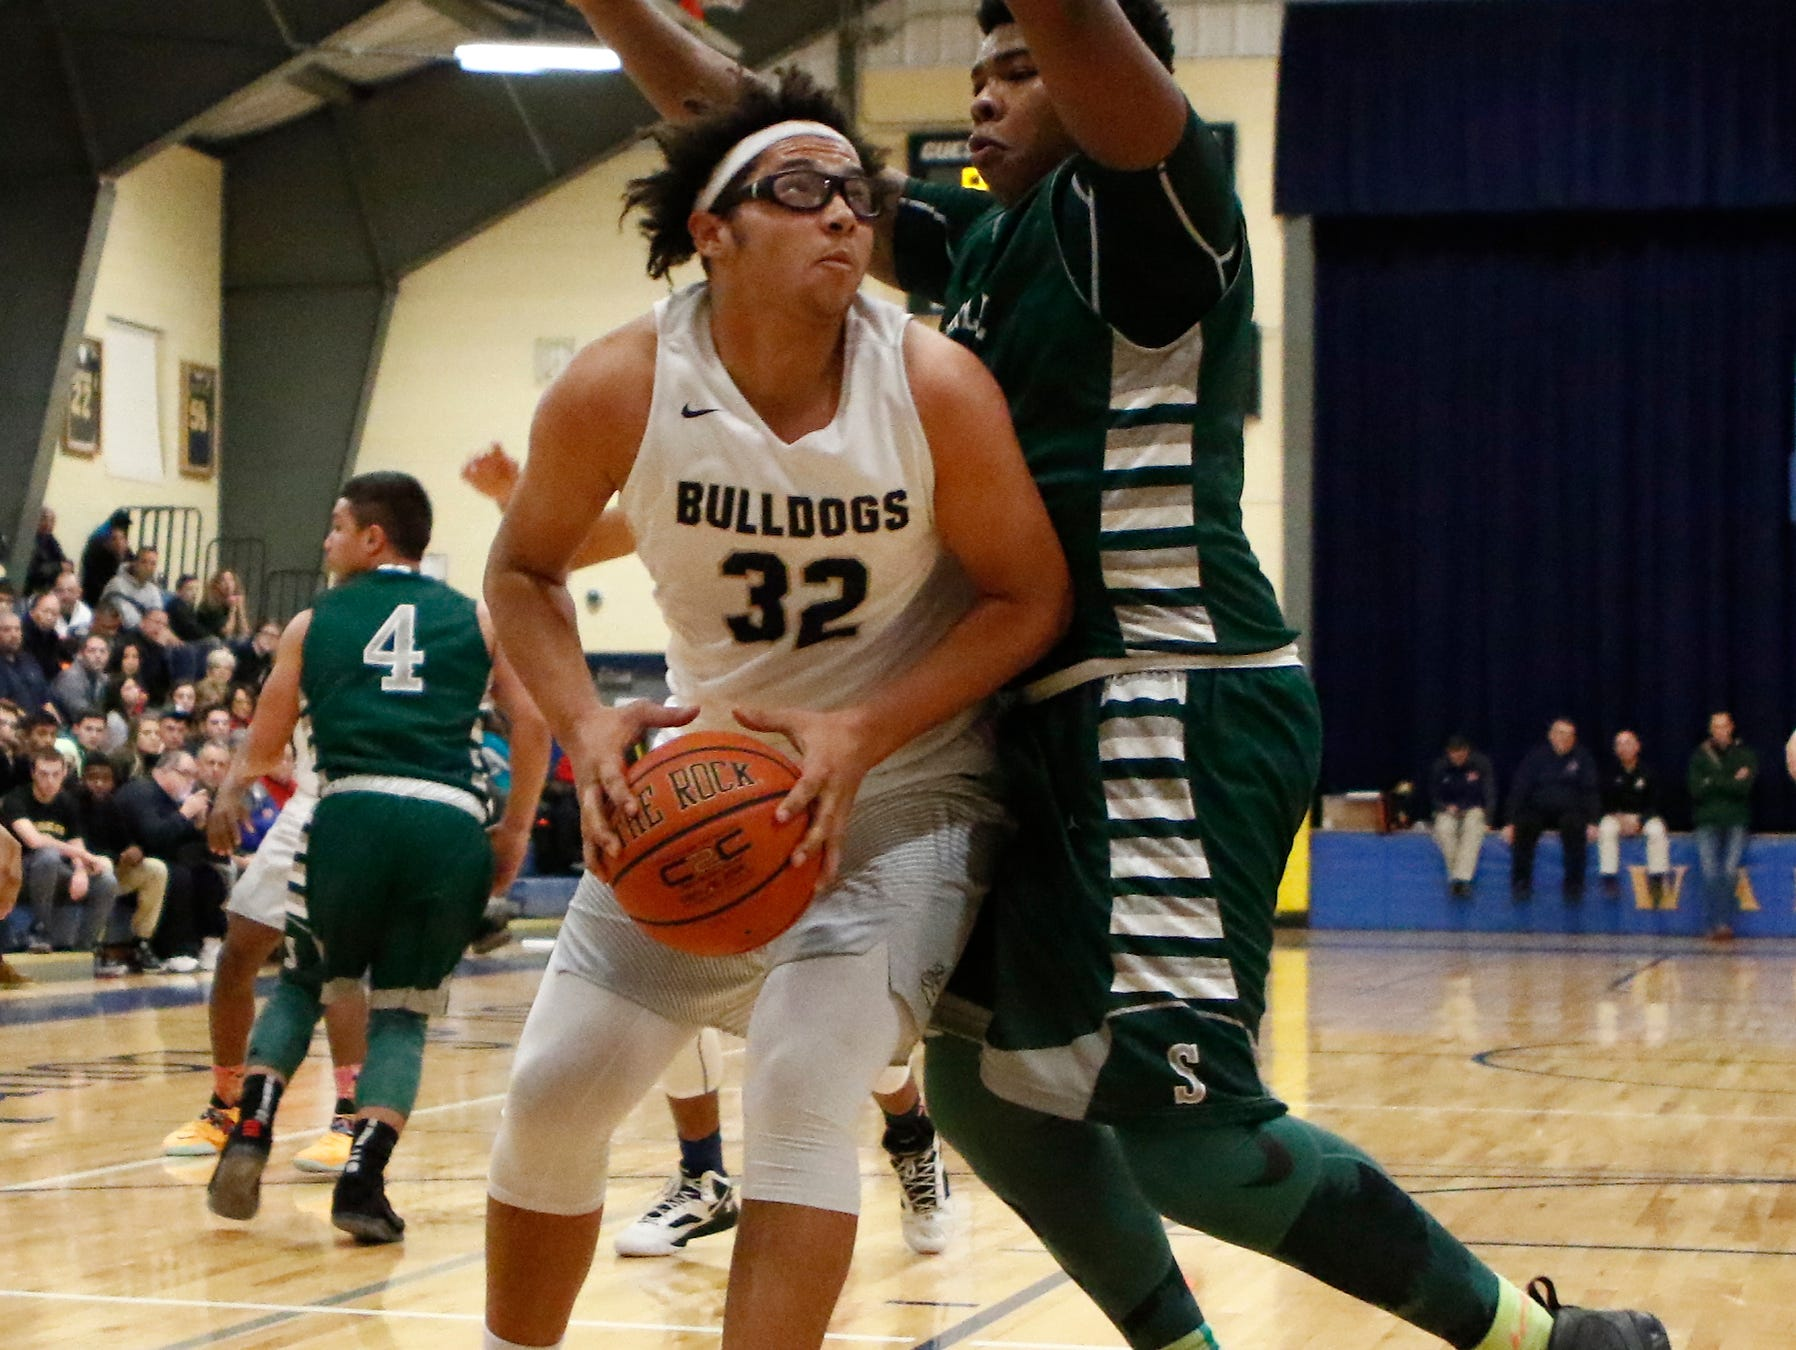 Beacon's Jemond Galloway (32) turns on Spackenkill's Kyiev Bennermon (25) in the championship game of the Duane Davis memorial basketball tournament at Our Lady of Lourdes High School in Poughkeepsie on Saturday, December 31, 2016.